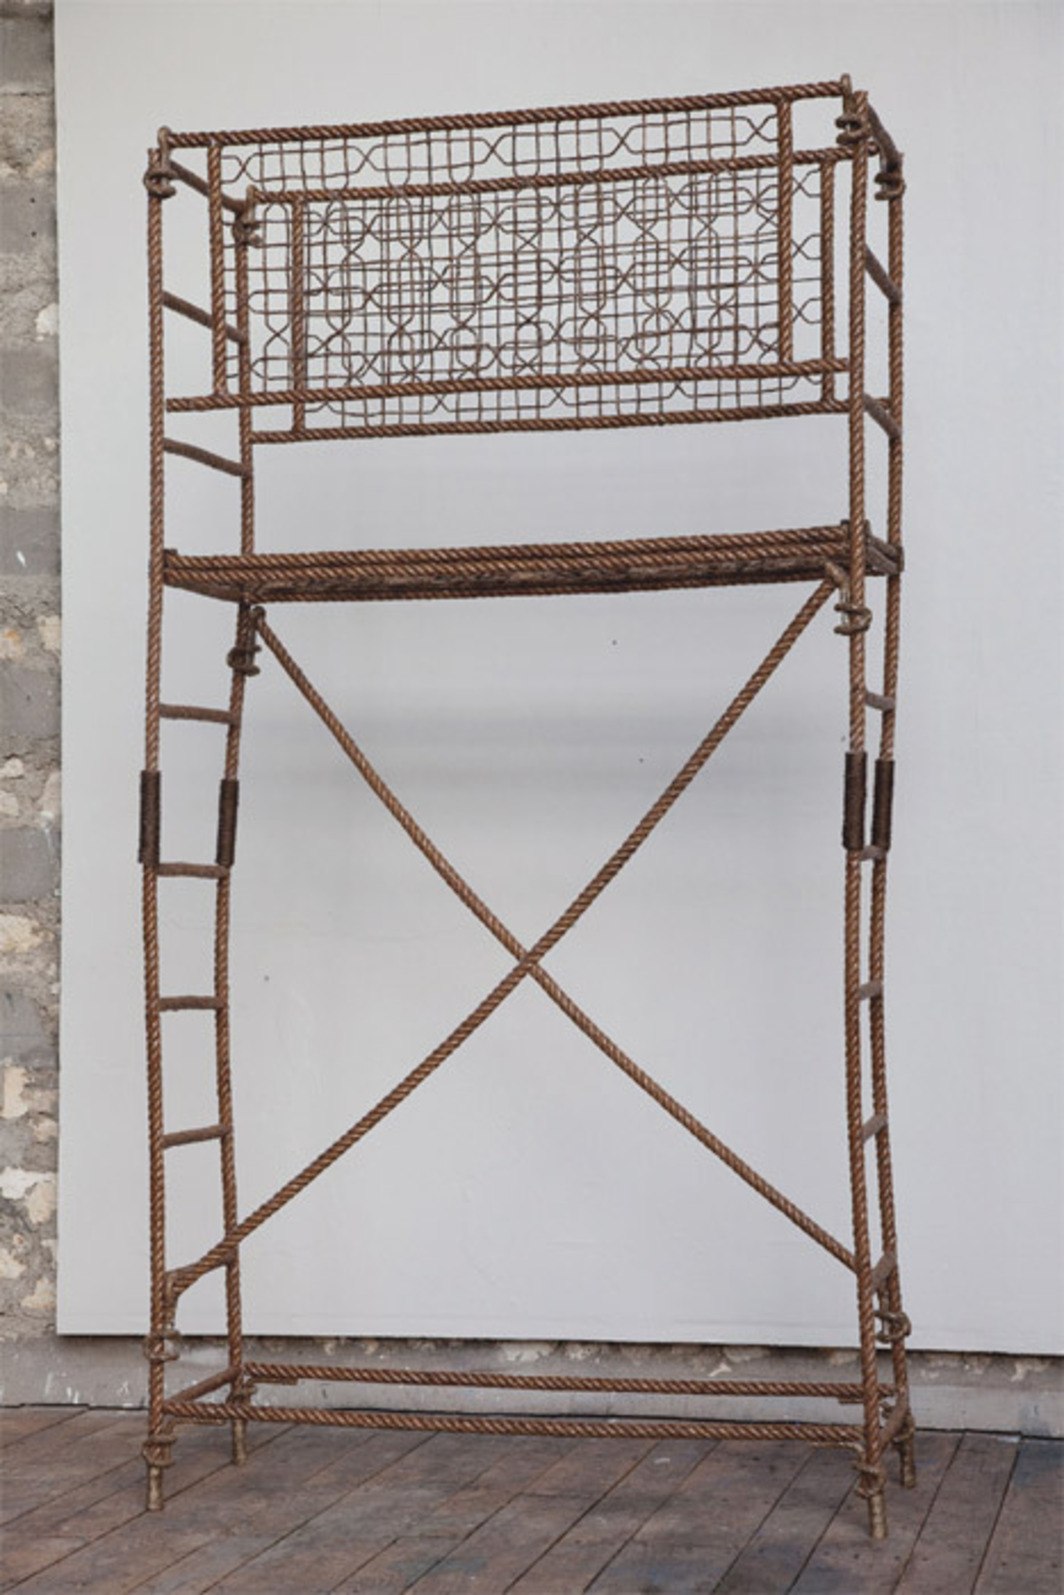 "Yazid Oulab, Échafaudage (Scaffolding), 2009, rope and resin, approx. 118 1/8 x 61 3/8 x 20 7/8""."